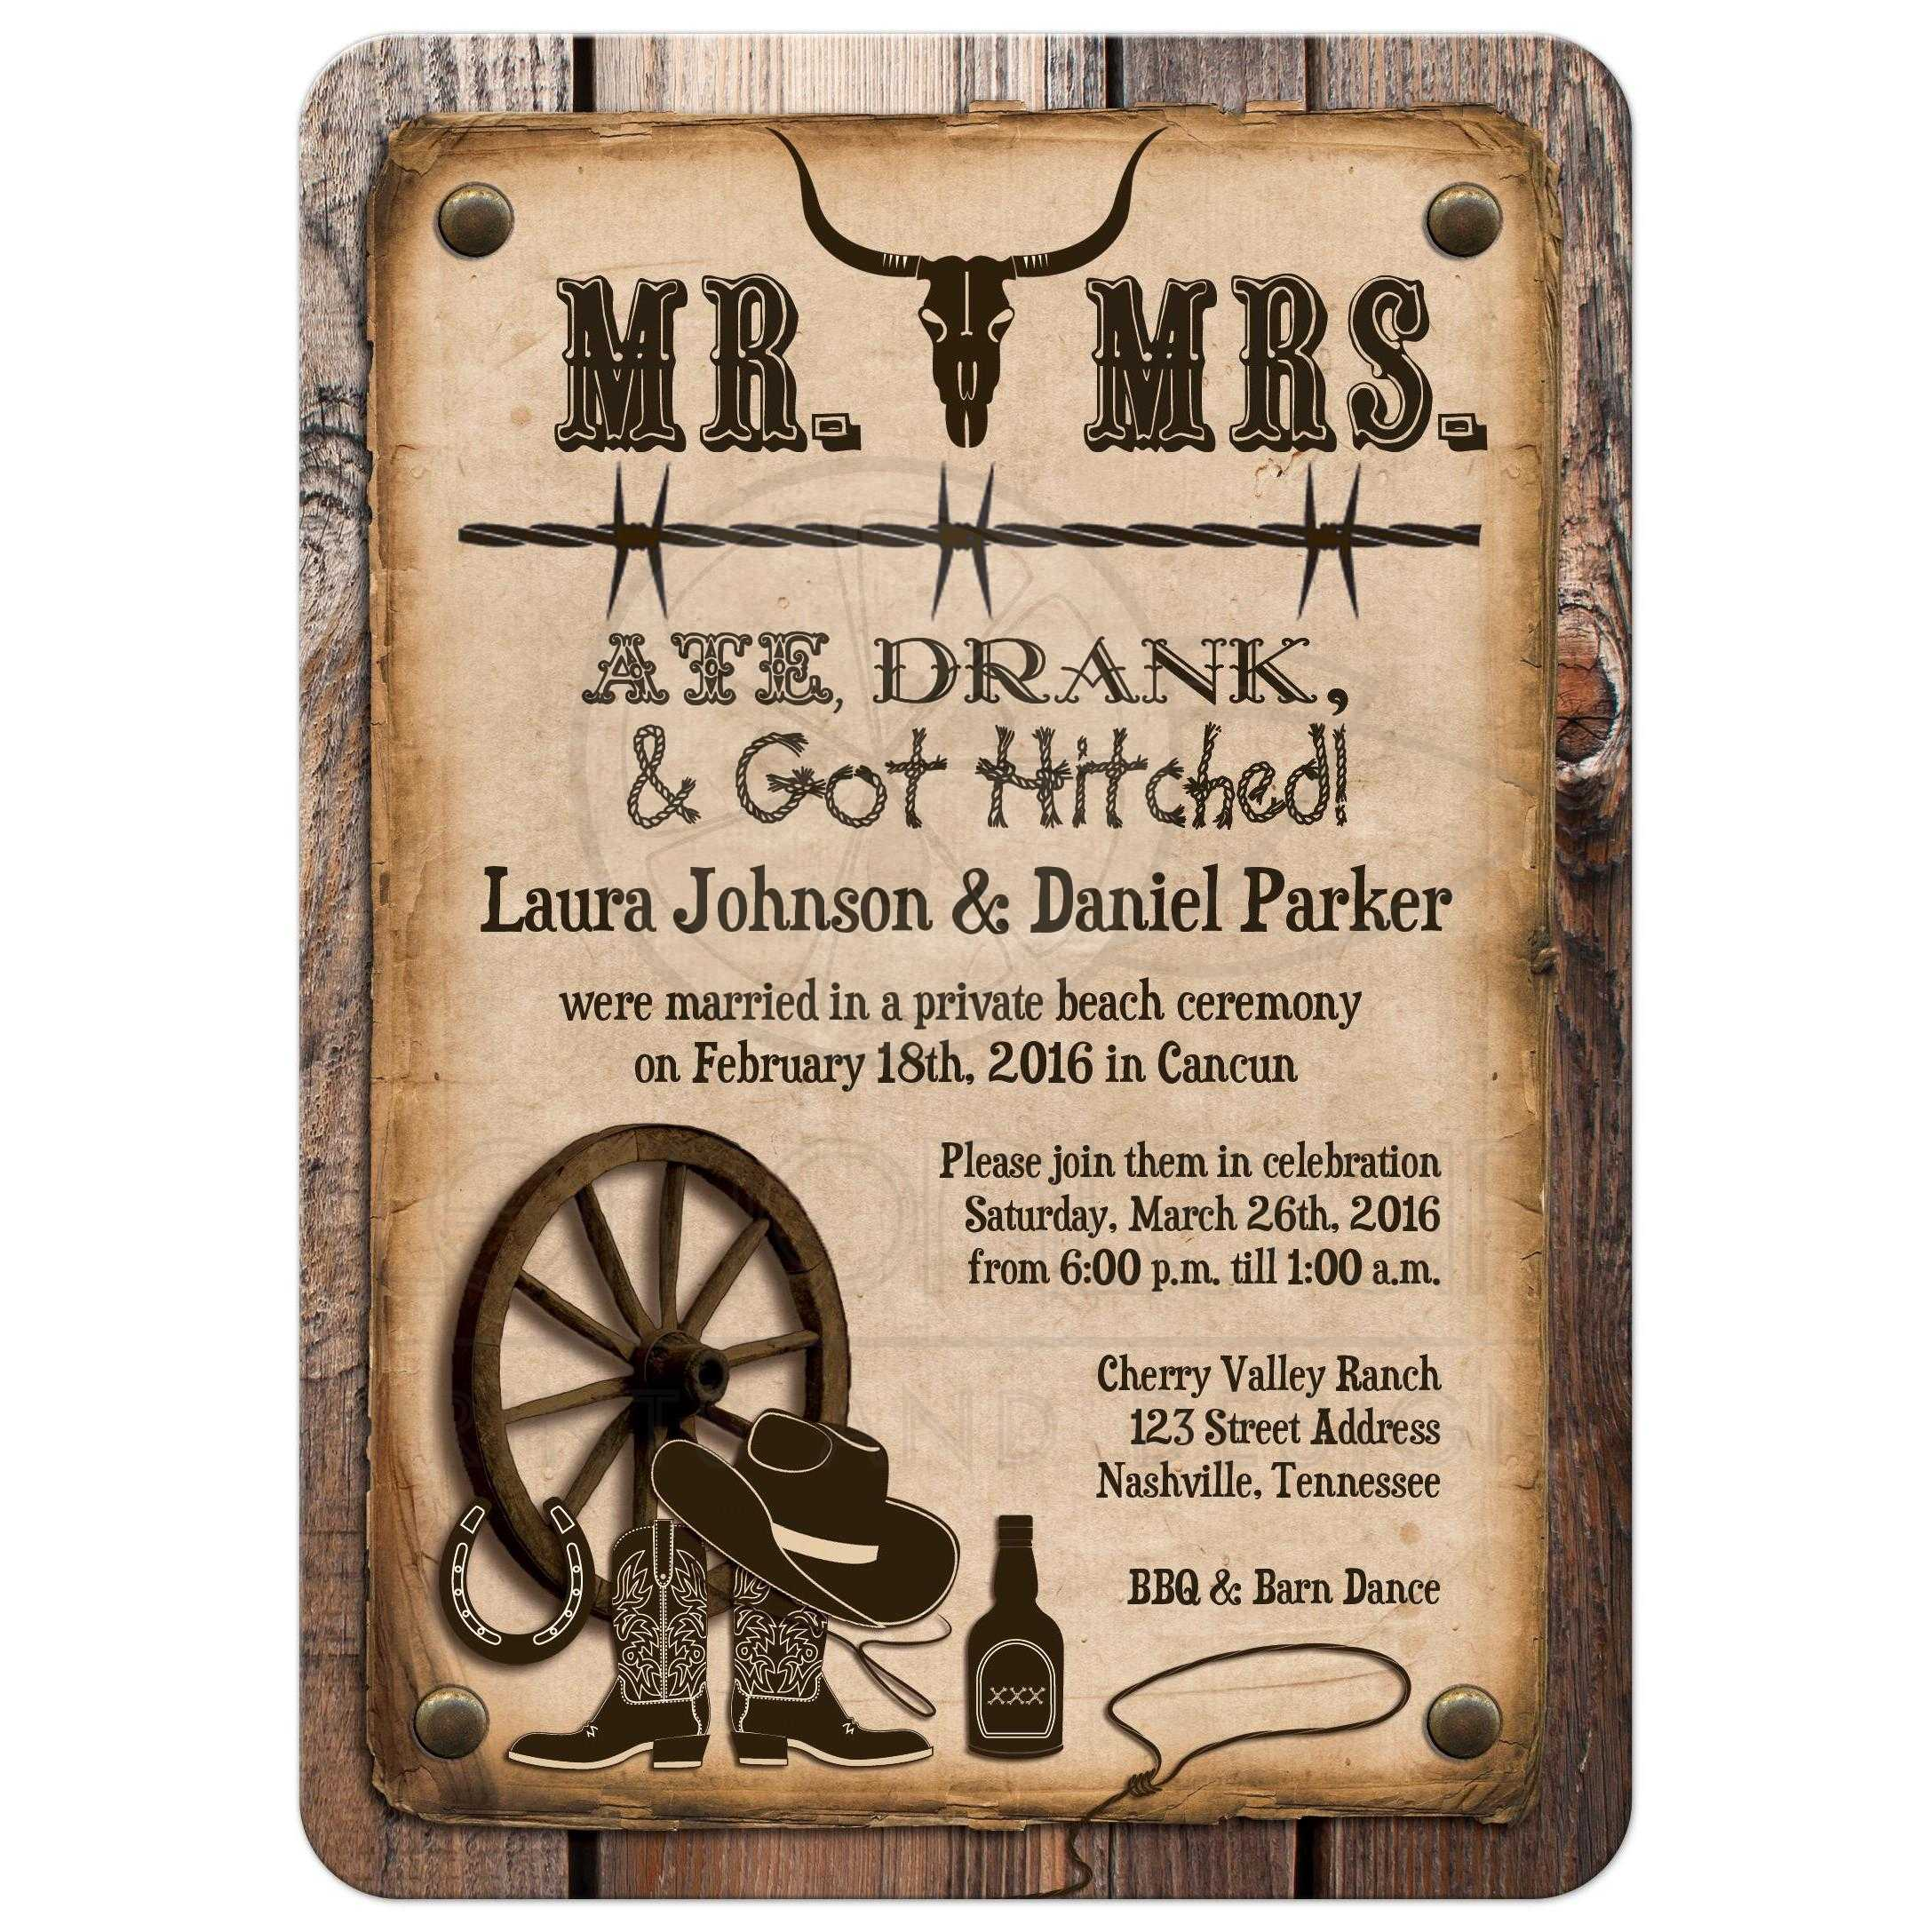 post wedding invitation rustic mr mrs western ate drank